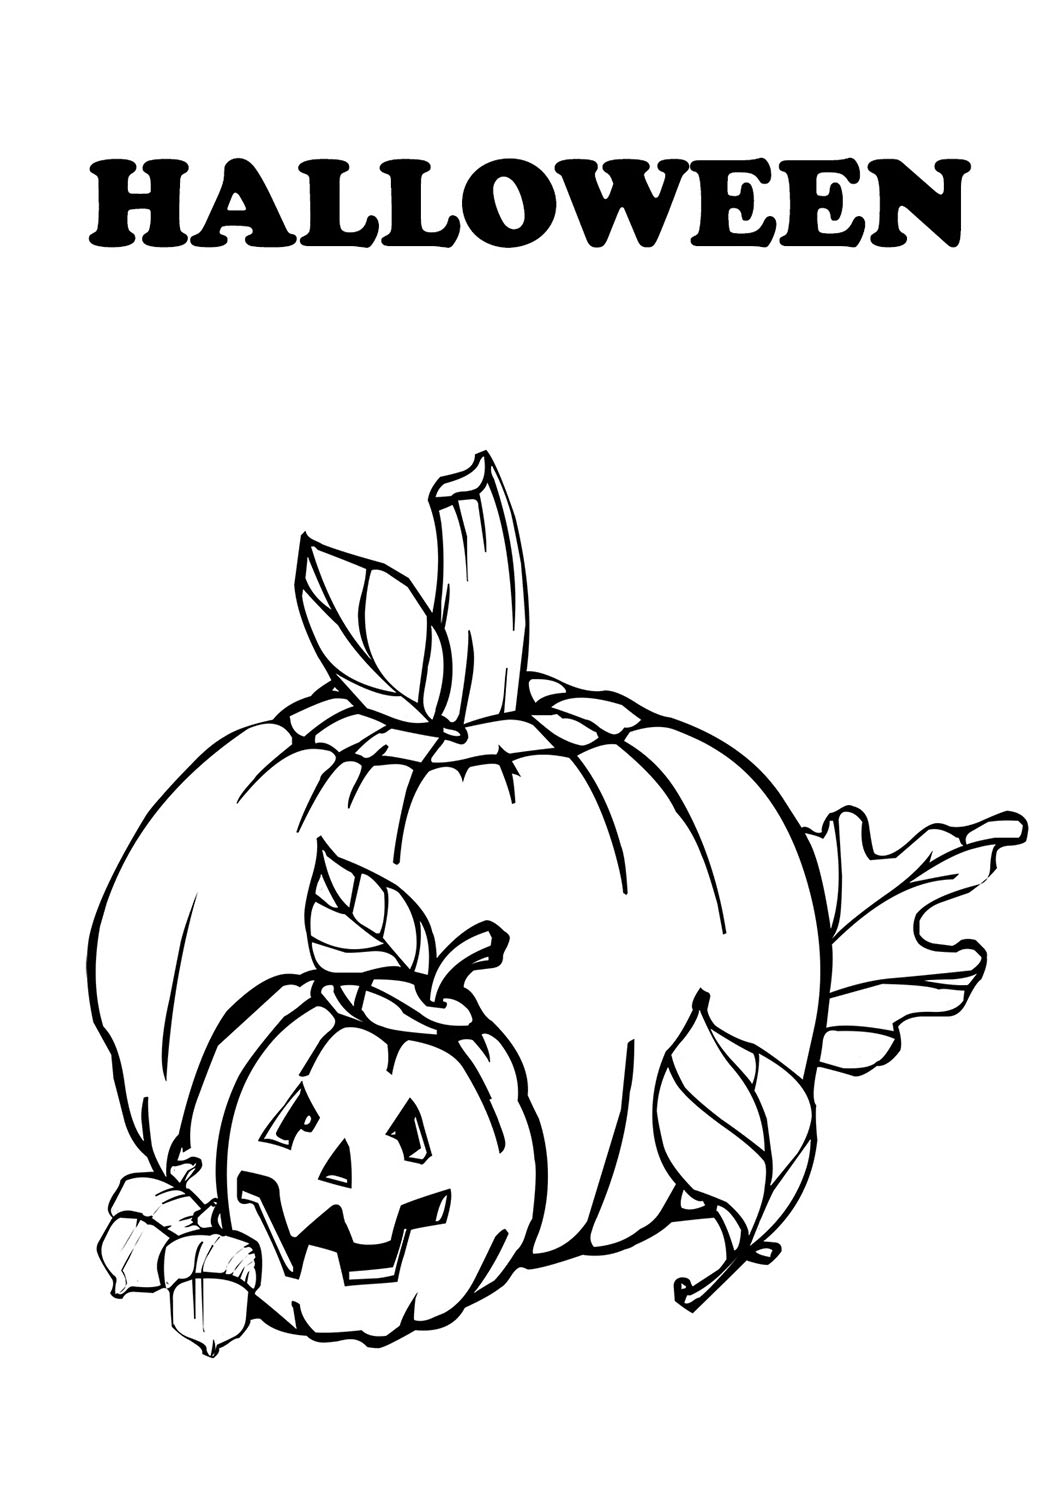 coloring pumpkin halloween clipart halloween coloring pages pumpkin coloring halloween clipart